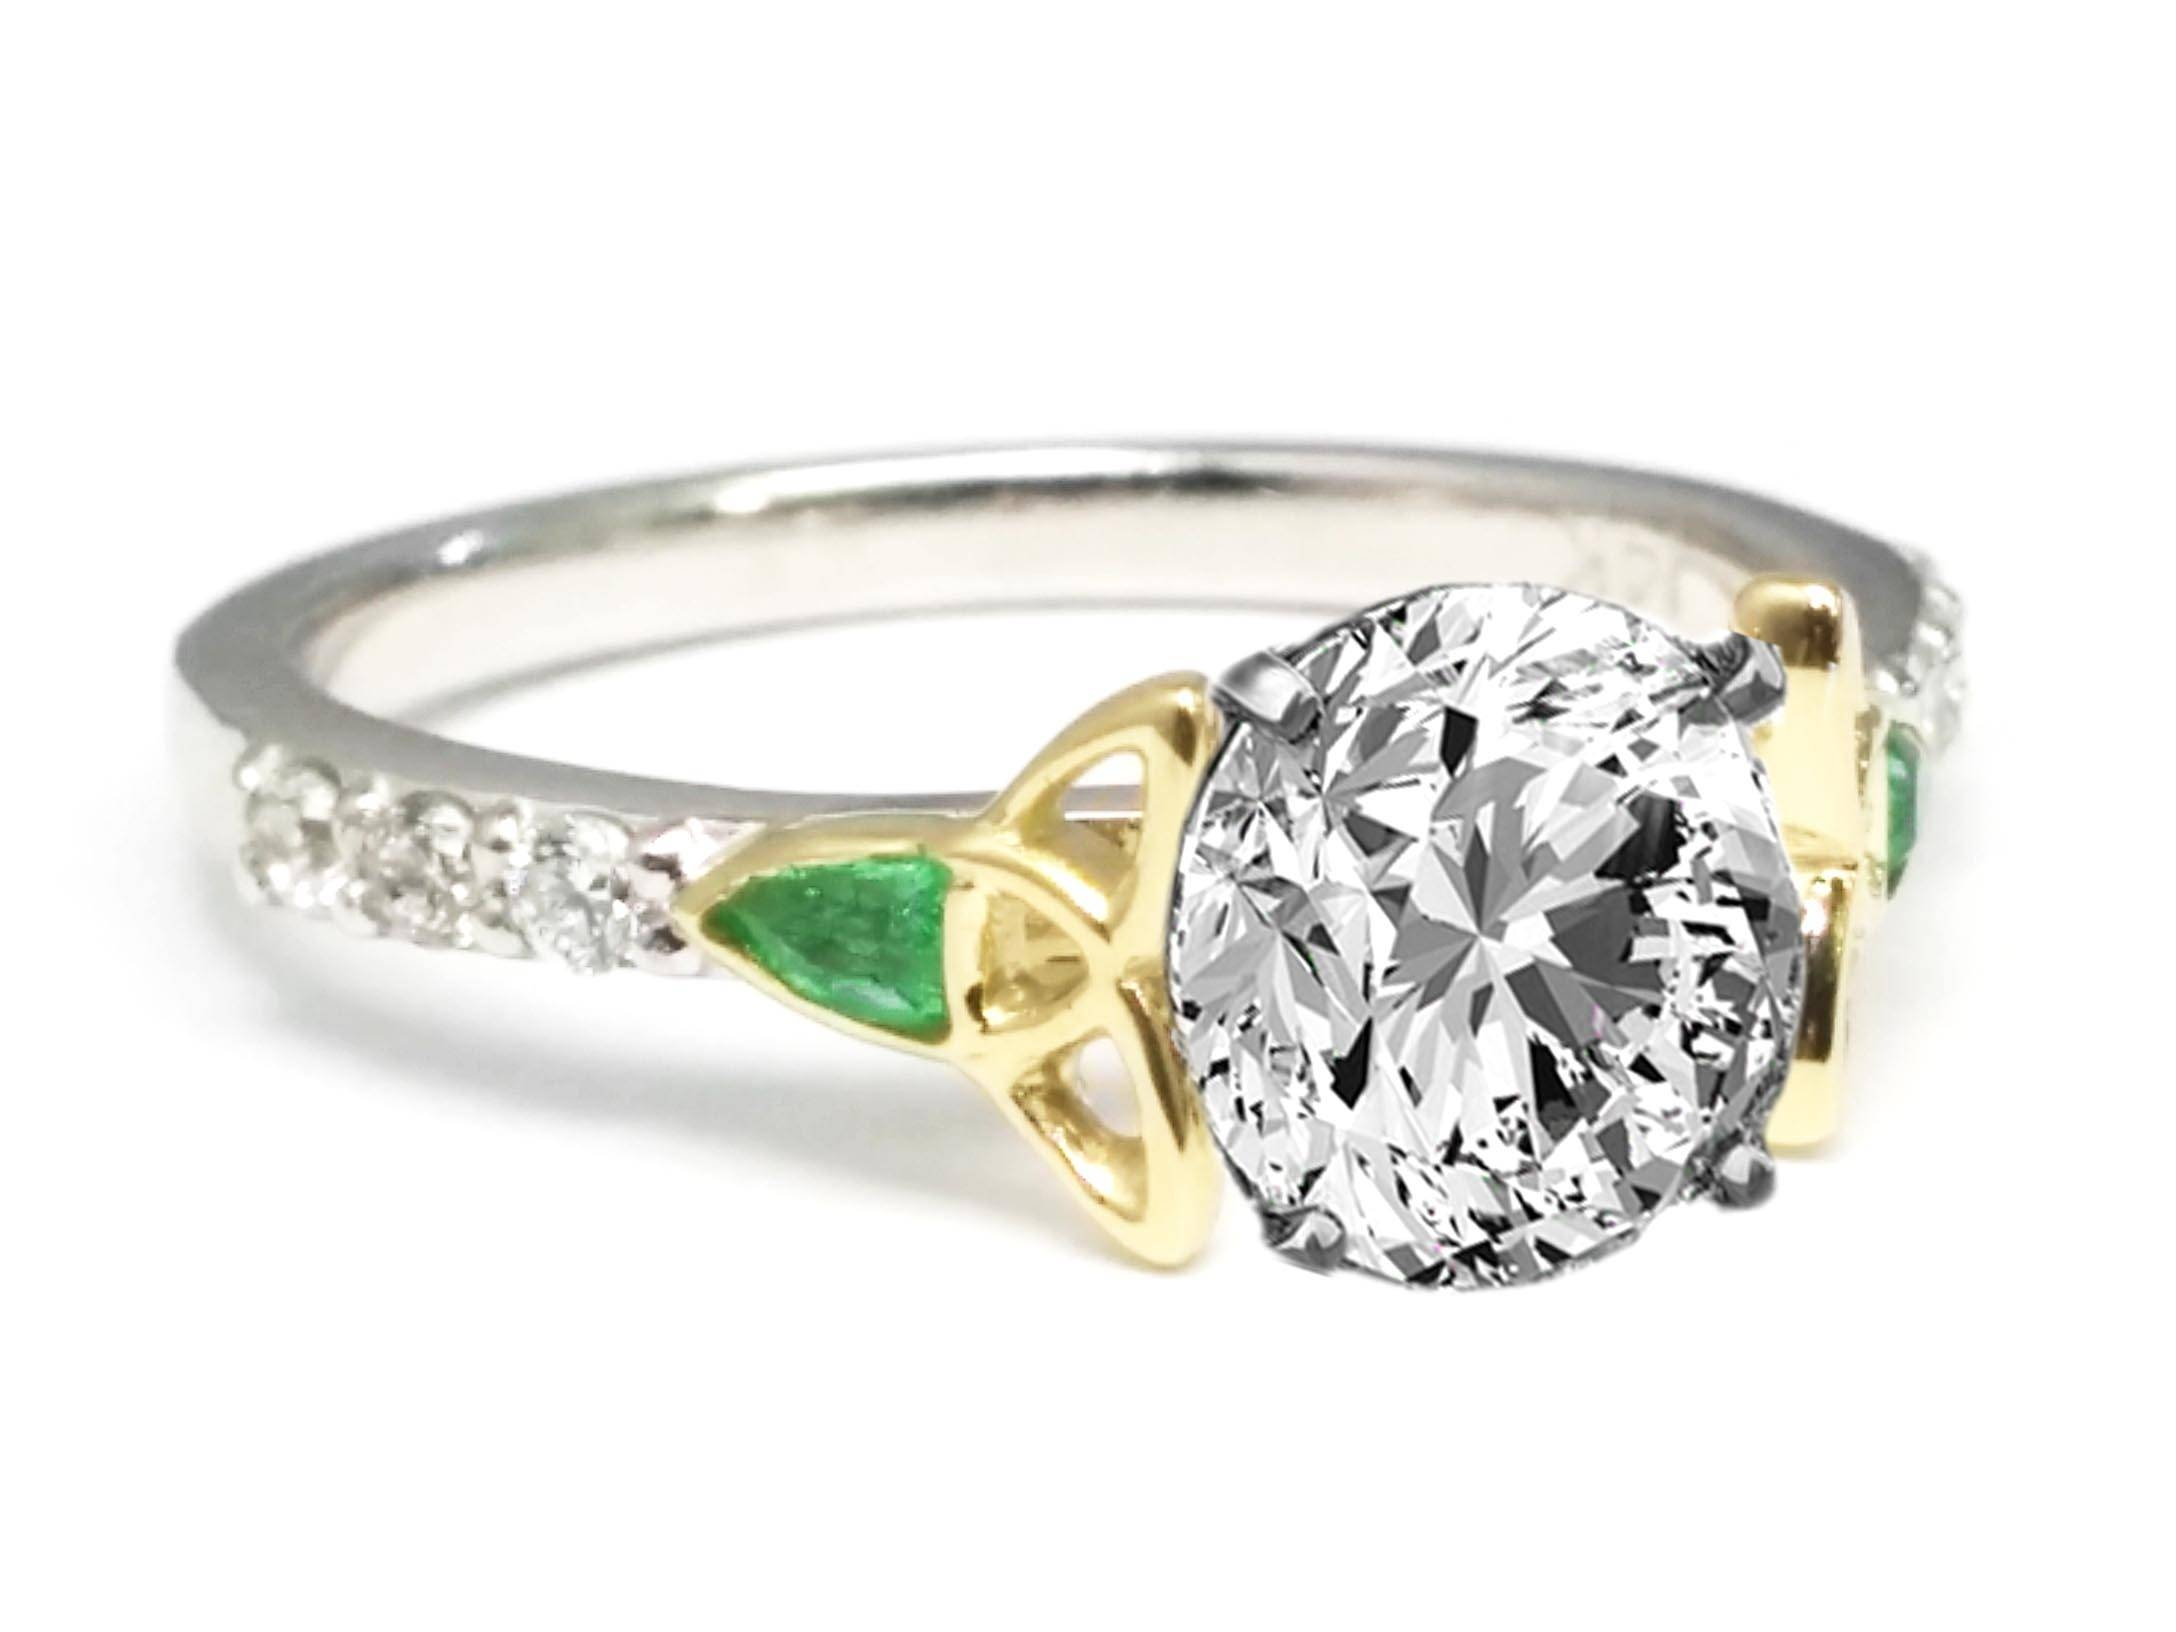 Celtic – Engagement Rings From Mdc Diamonds Nyc Throughout Celtic Engagement Rings (Gallery 12 of 15)